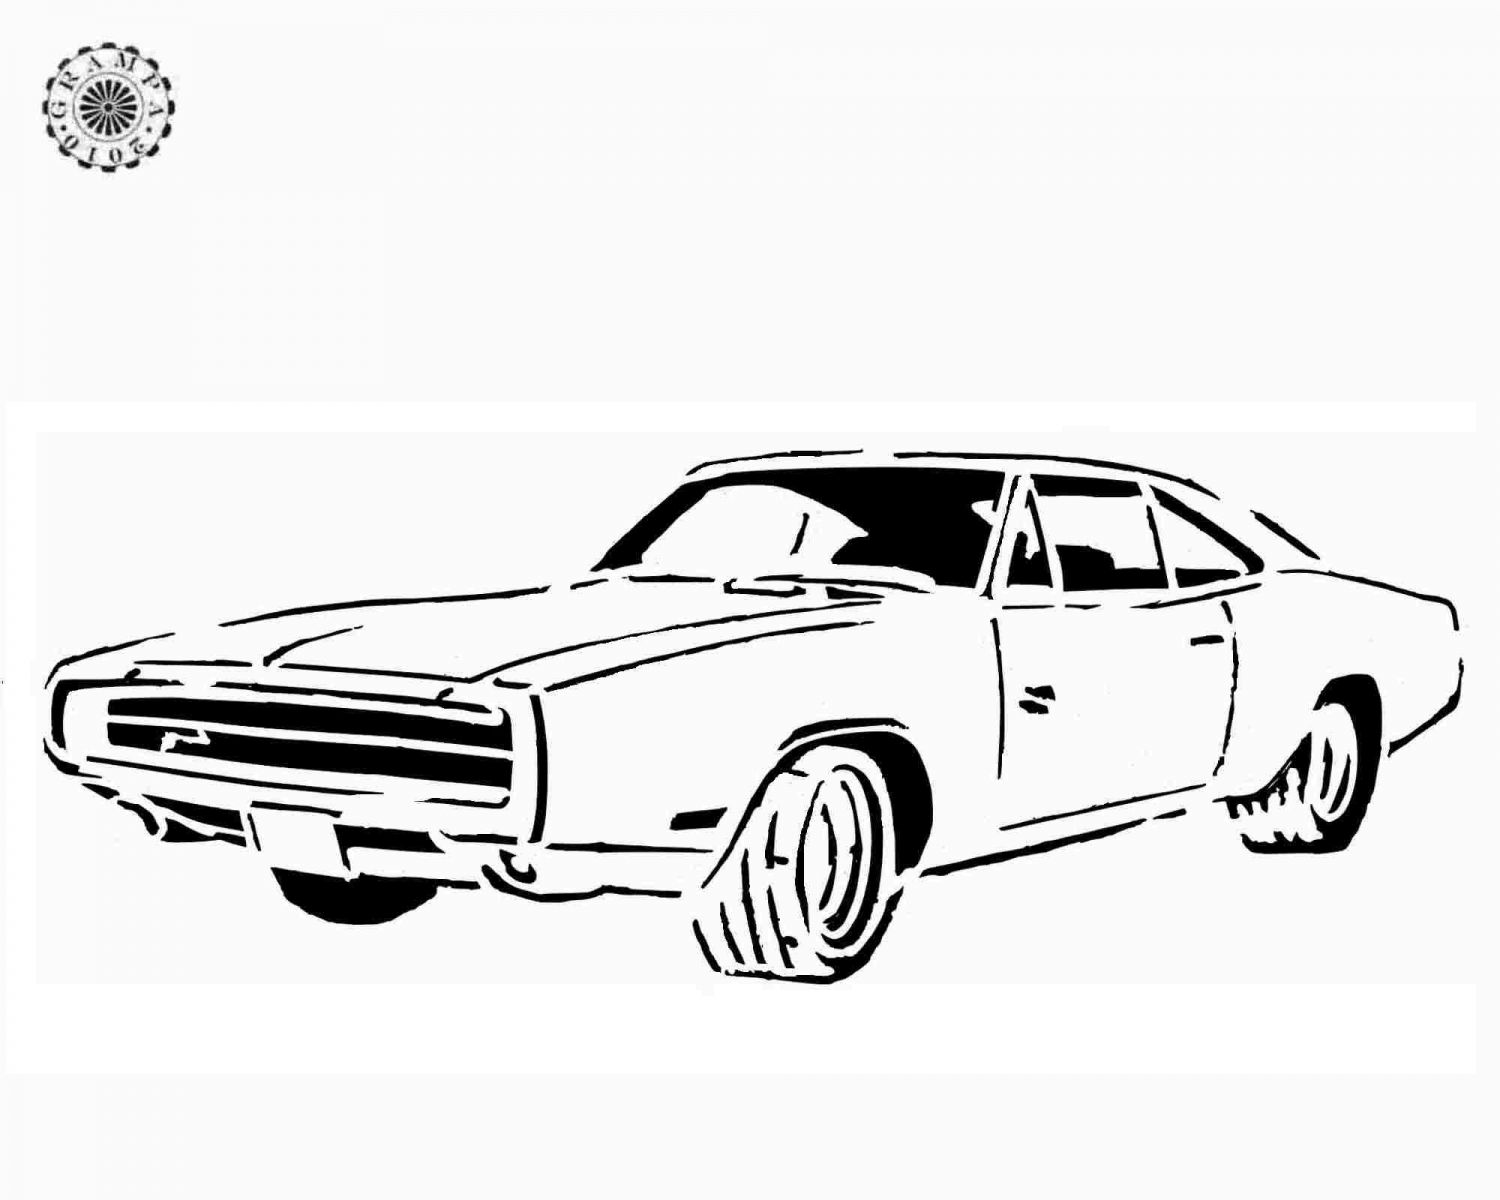 printable dodge charger coloring pages - photo#8